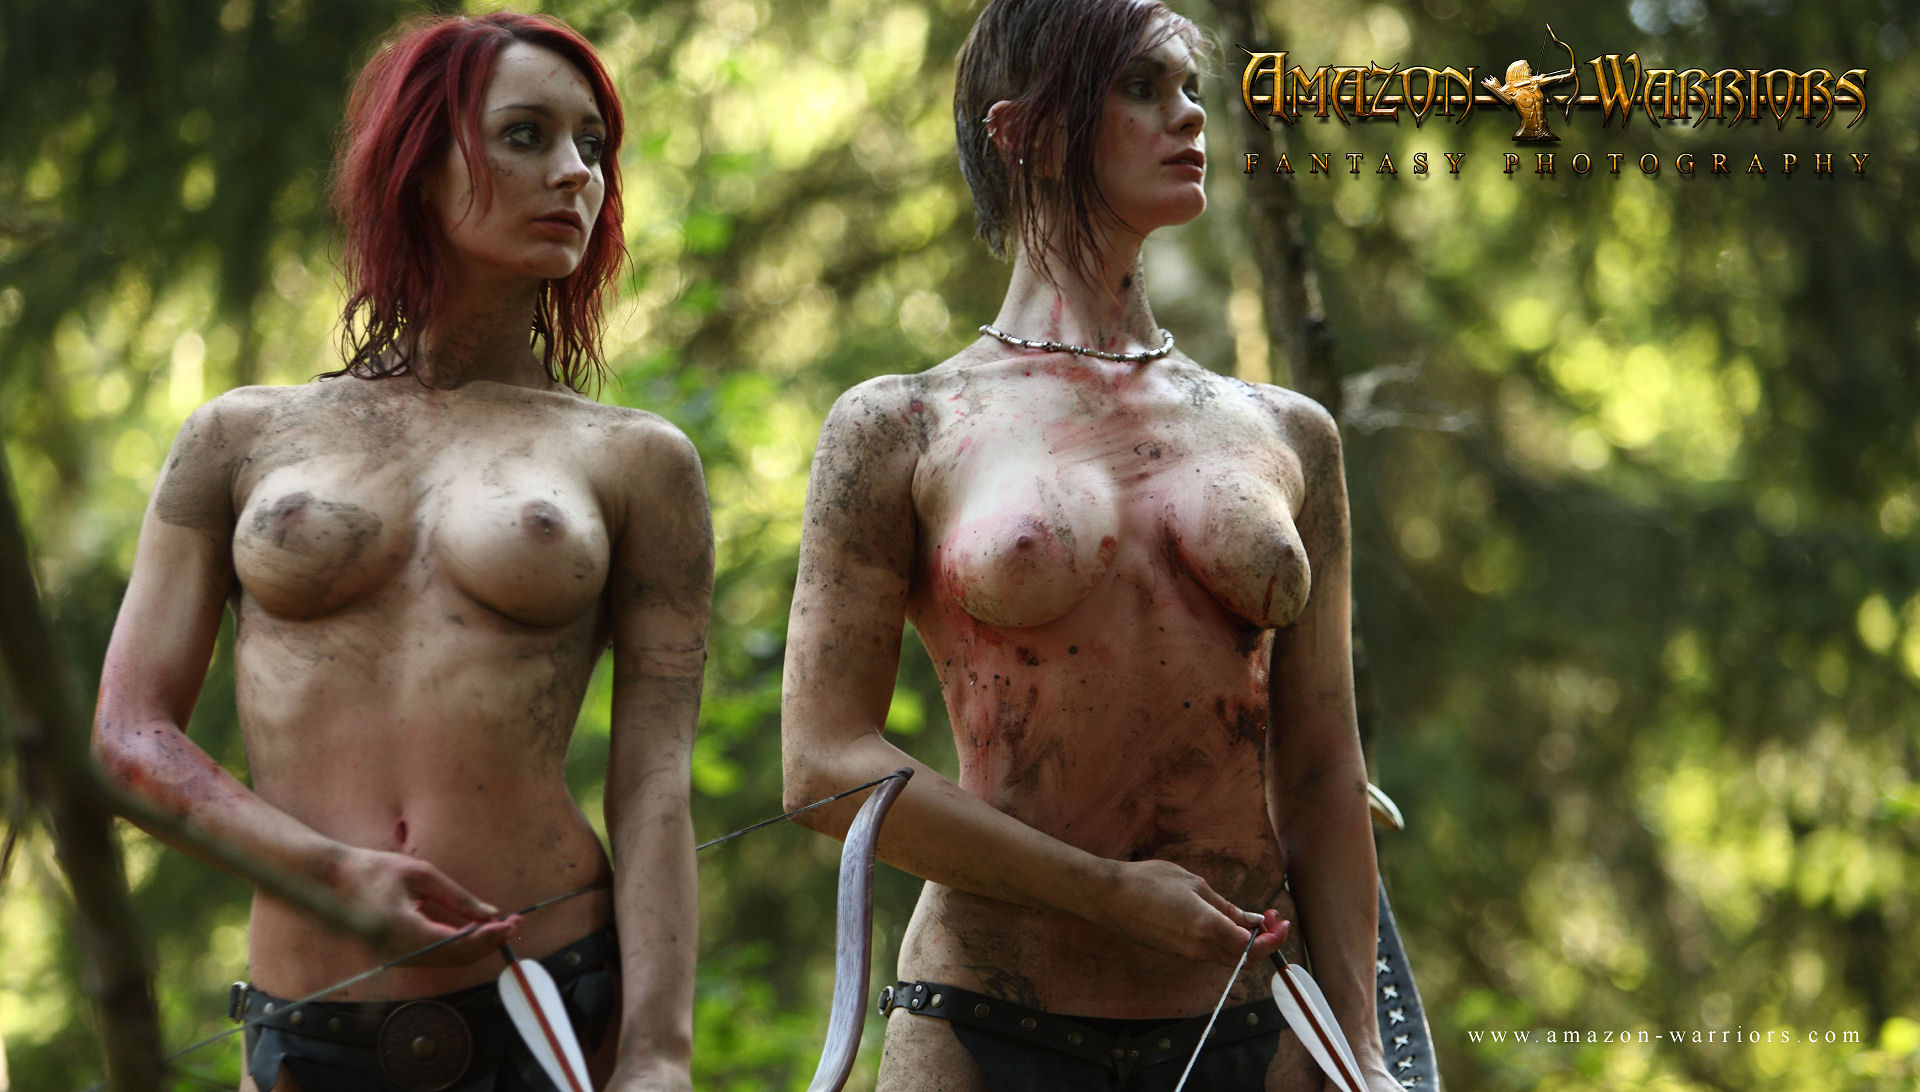 Amazonian warriors porn erotic scene